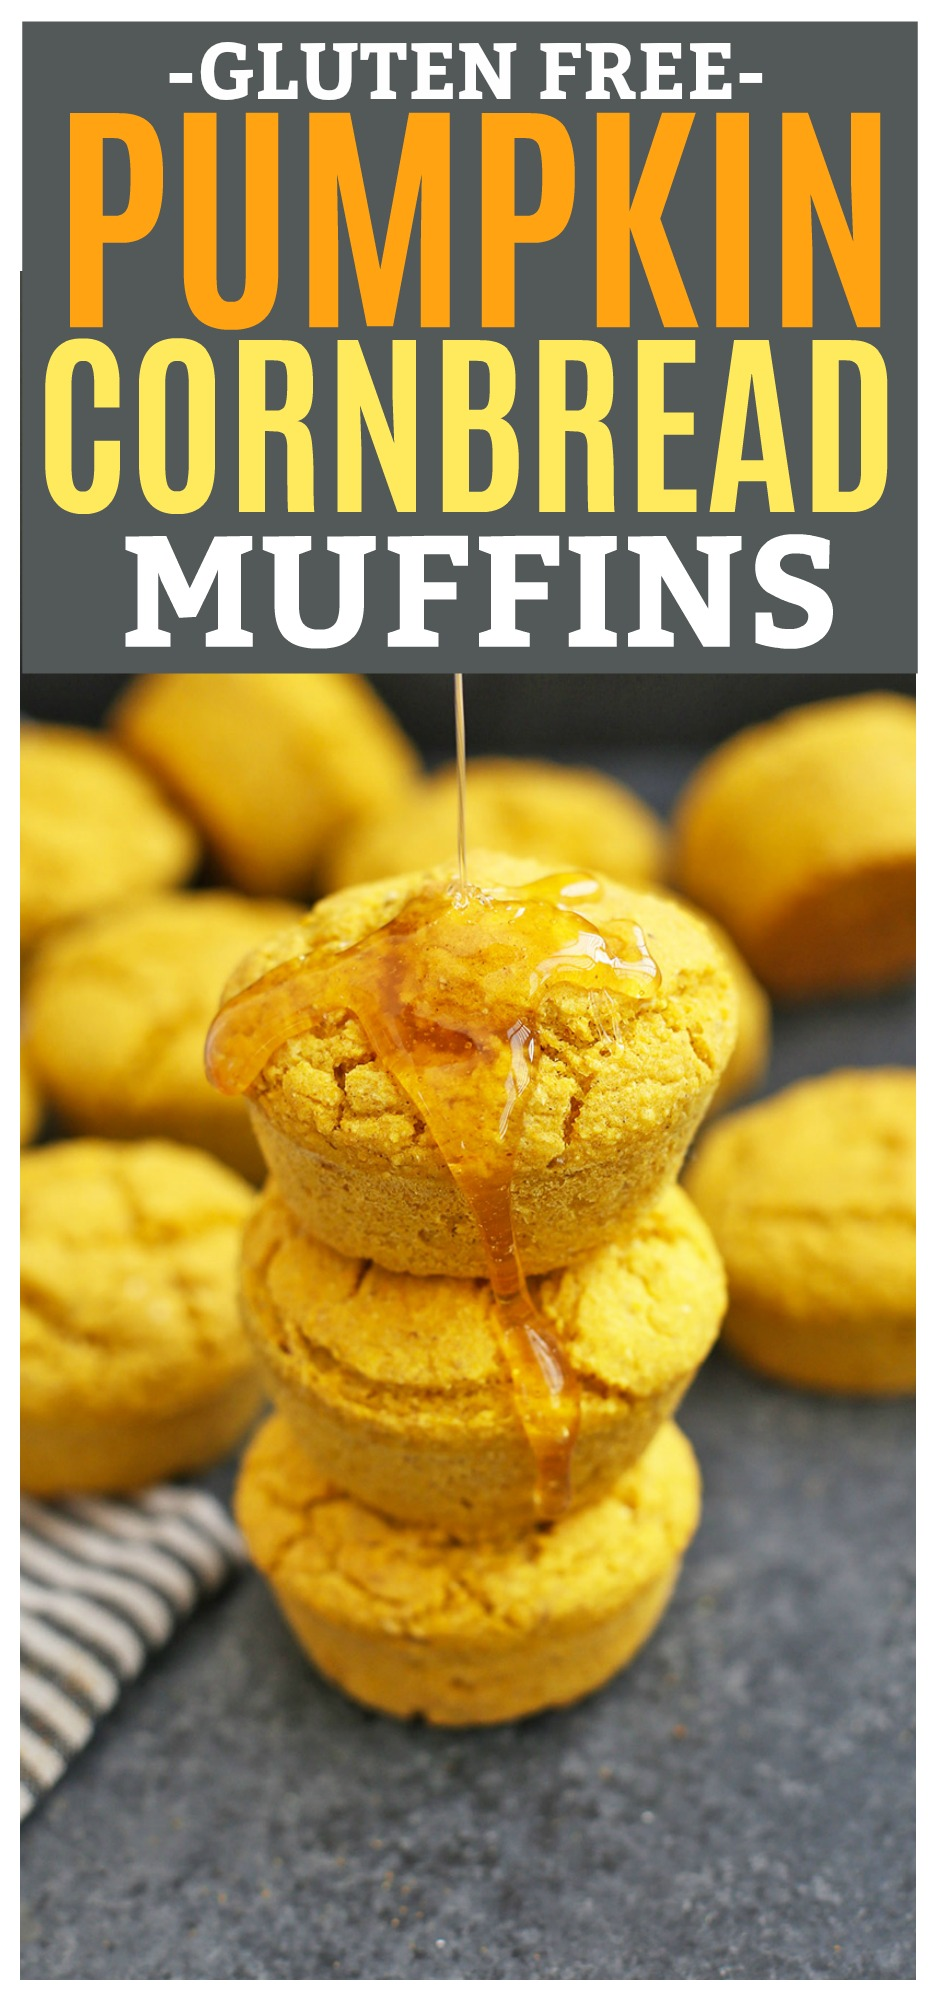 Gluten Free Pumpkin Cornbread Muffins - So good with soups, chili, and salad!